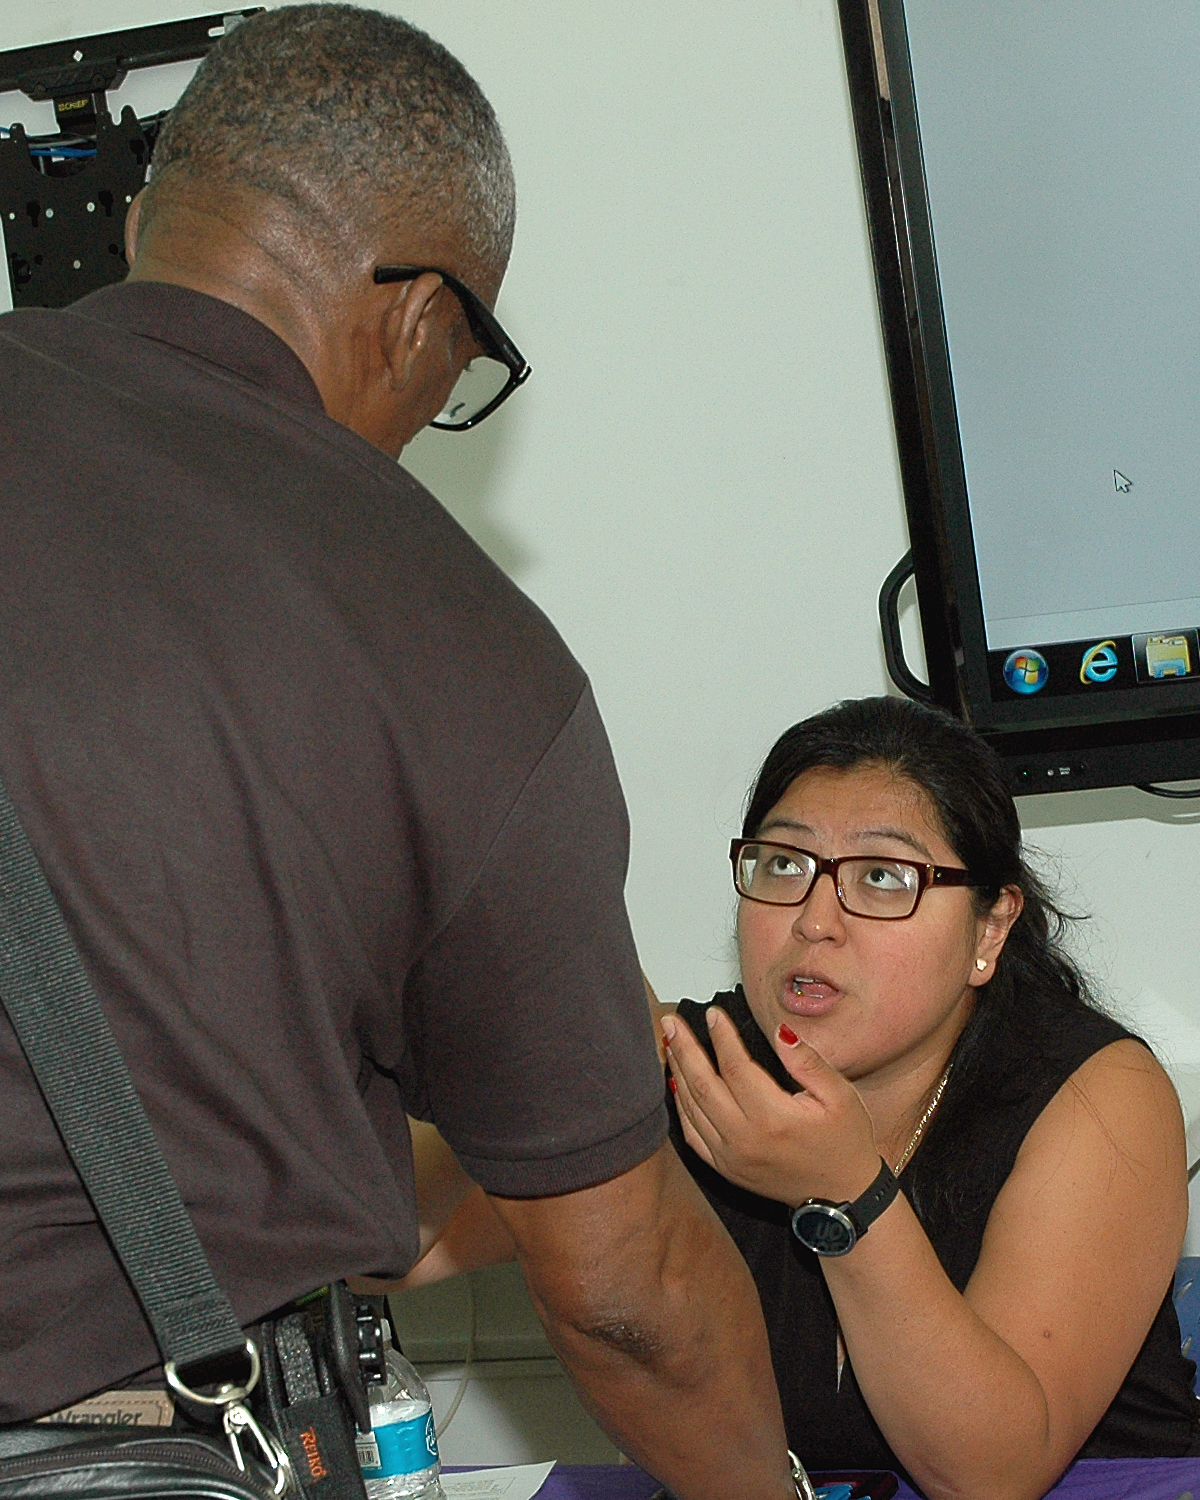 One of the job fair interviewers with an attendee